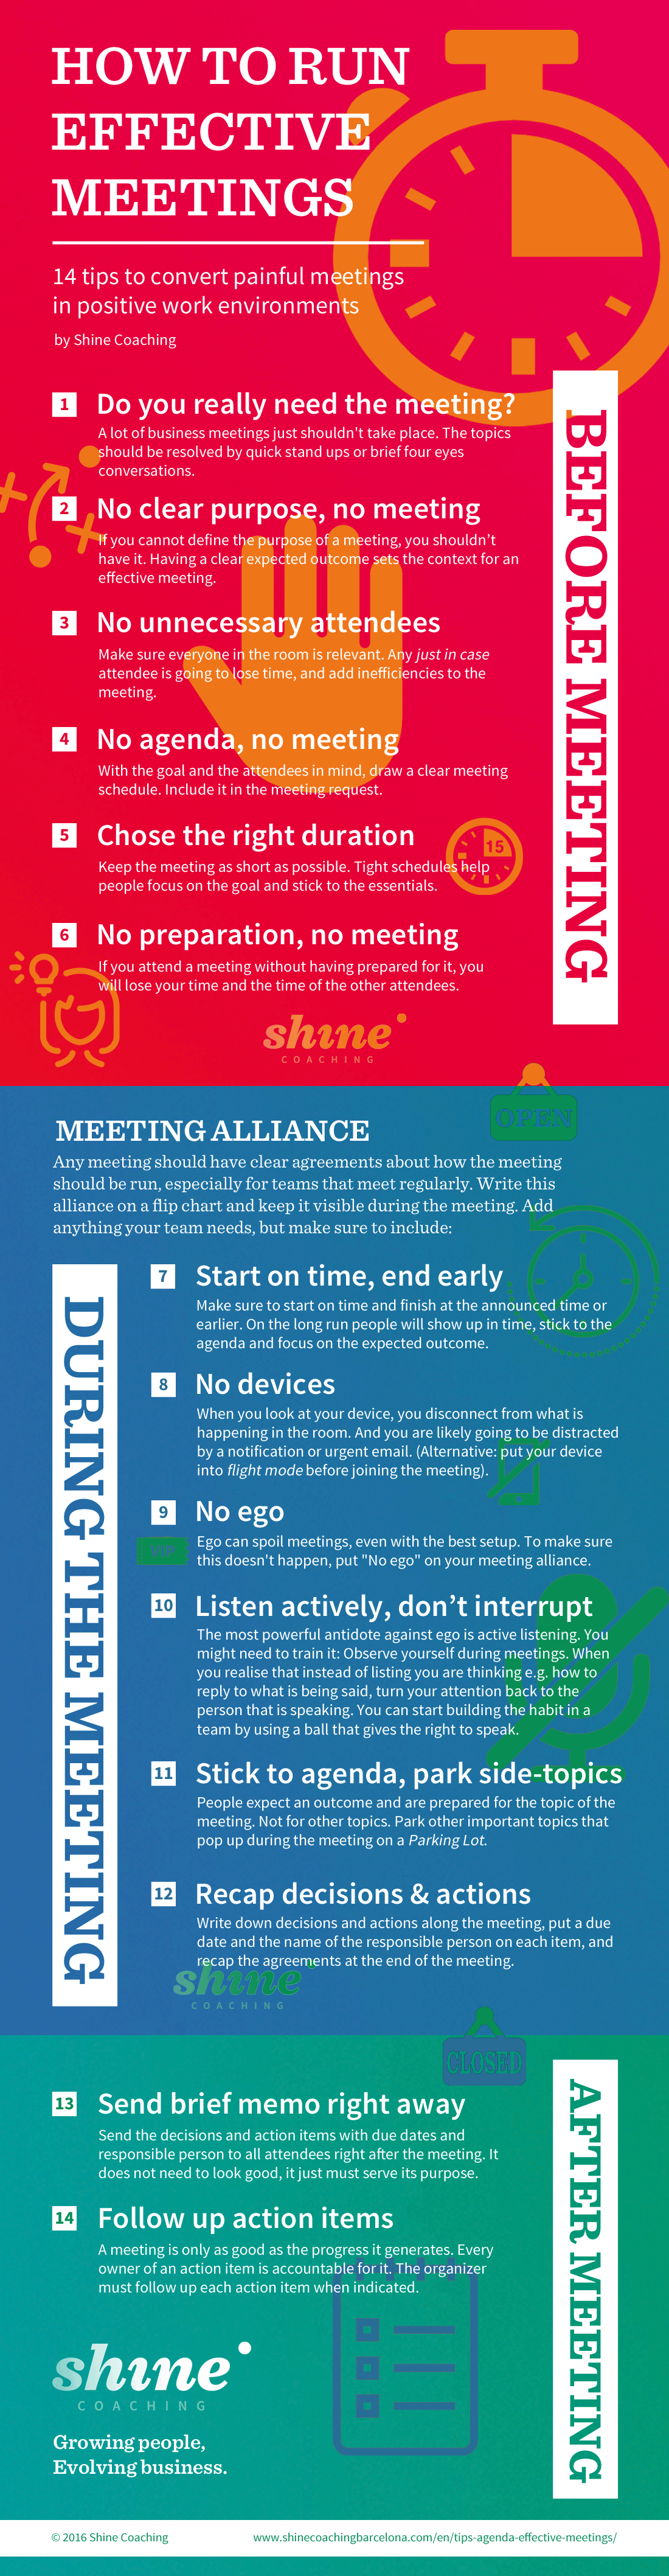 How to hold a successful meeting: 9 practical tips